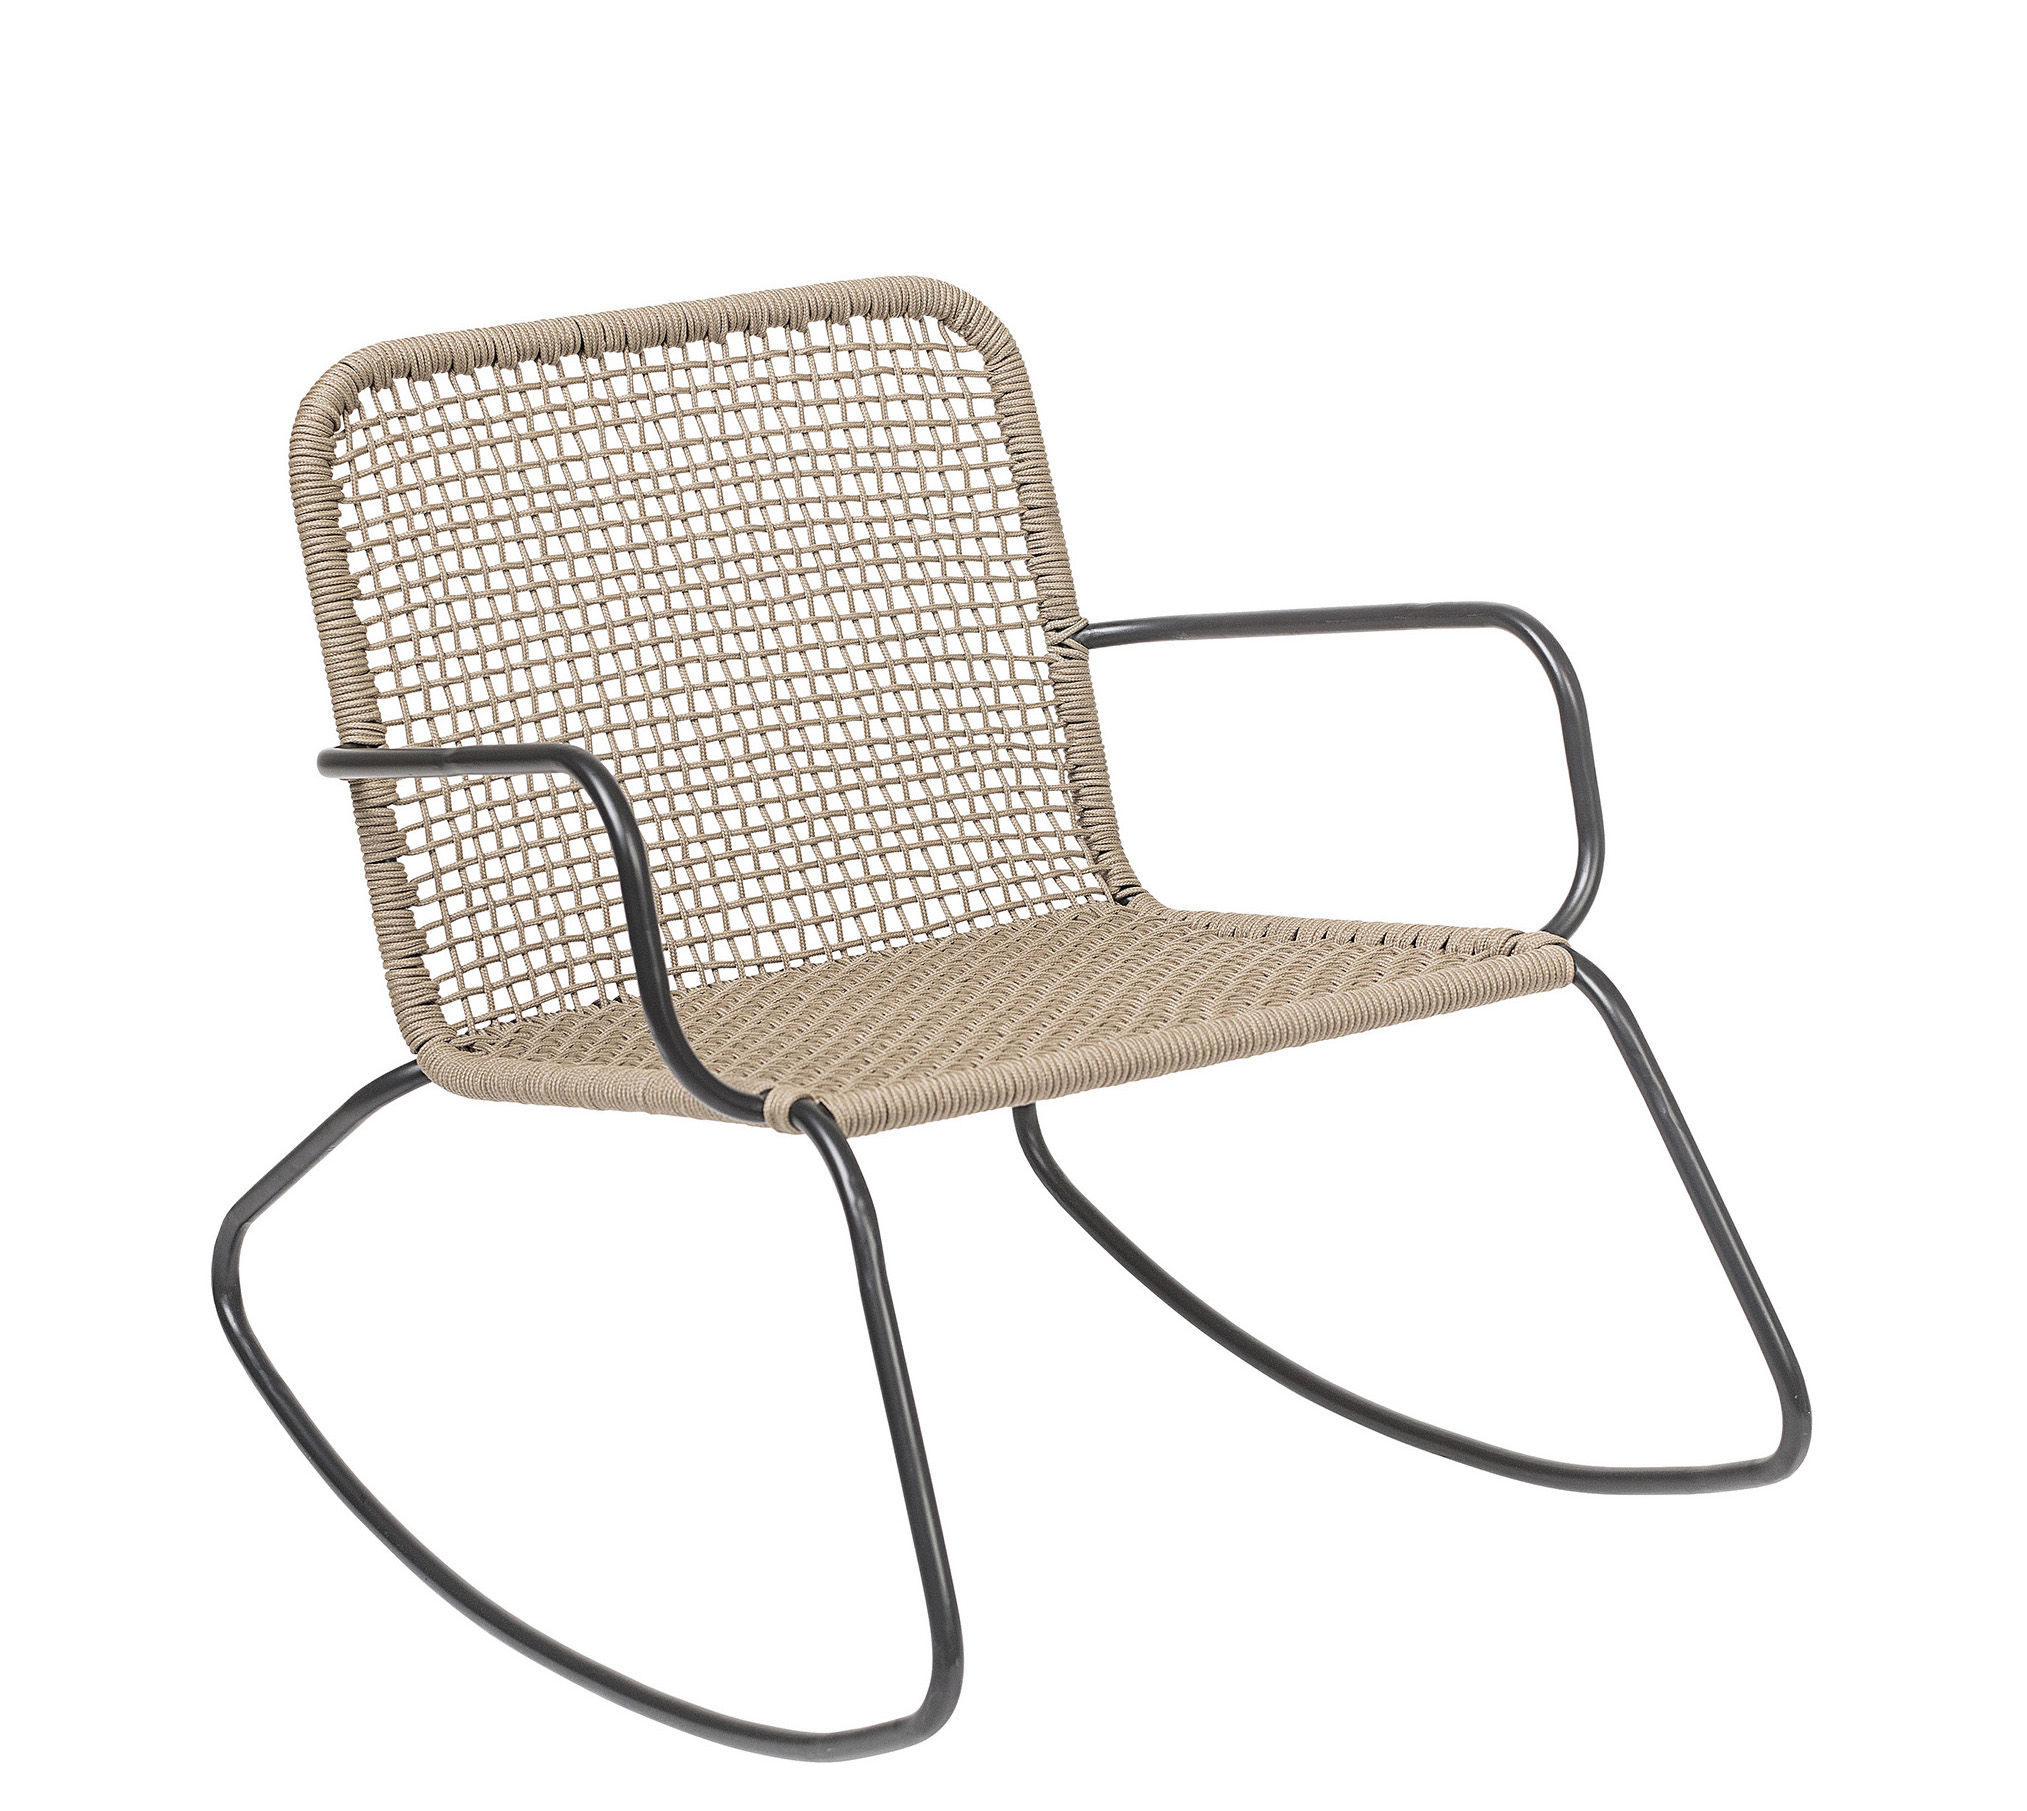 Furniture - Armchairs - Nature Rocking chair - / Indoors & outdoors by Bloomingville - Beige / Black - Lacquered steel, PVC wire